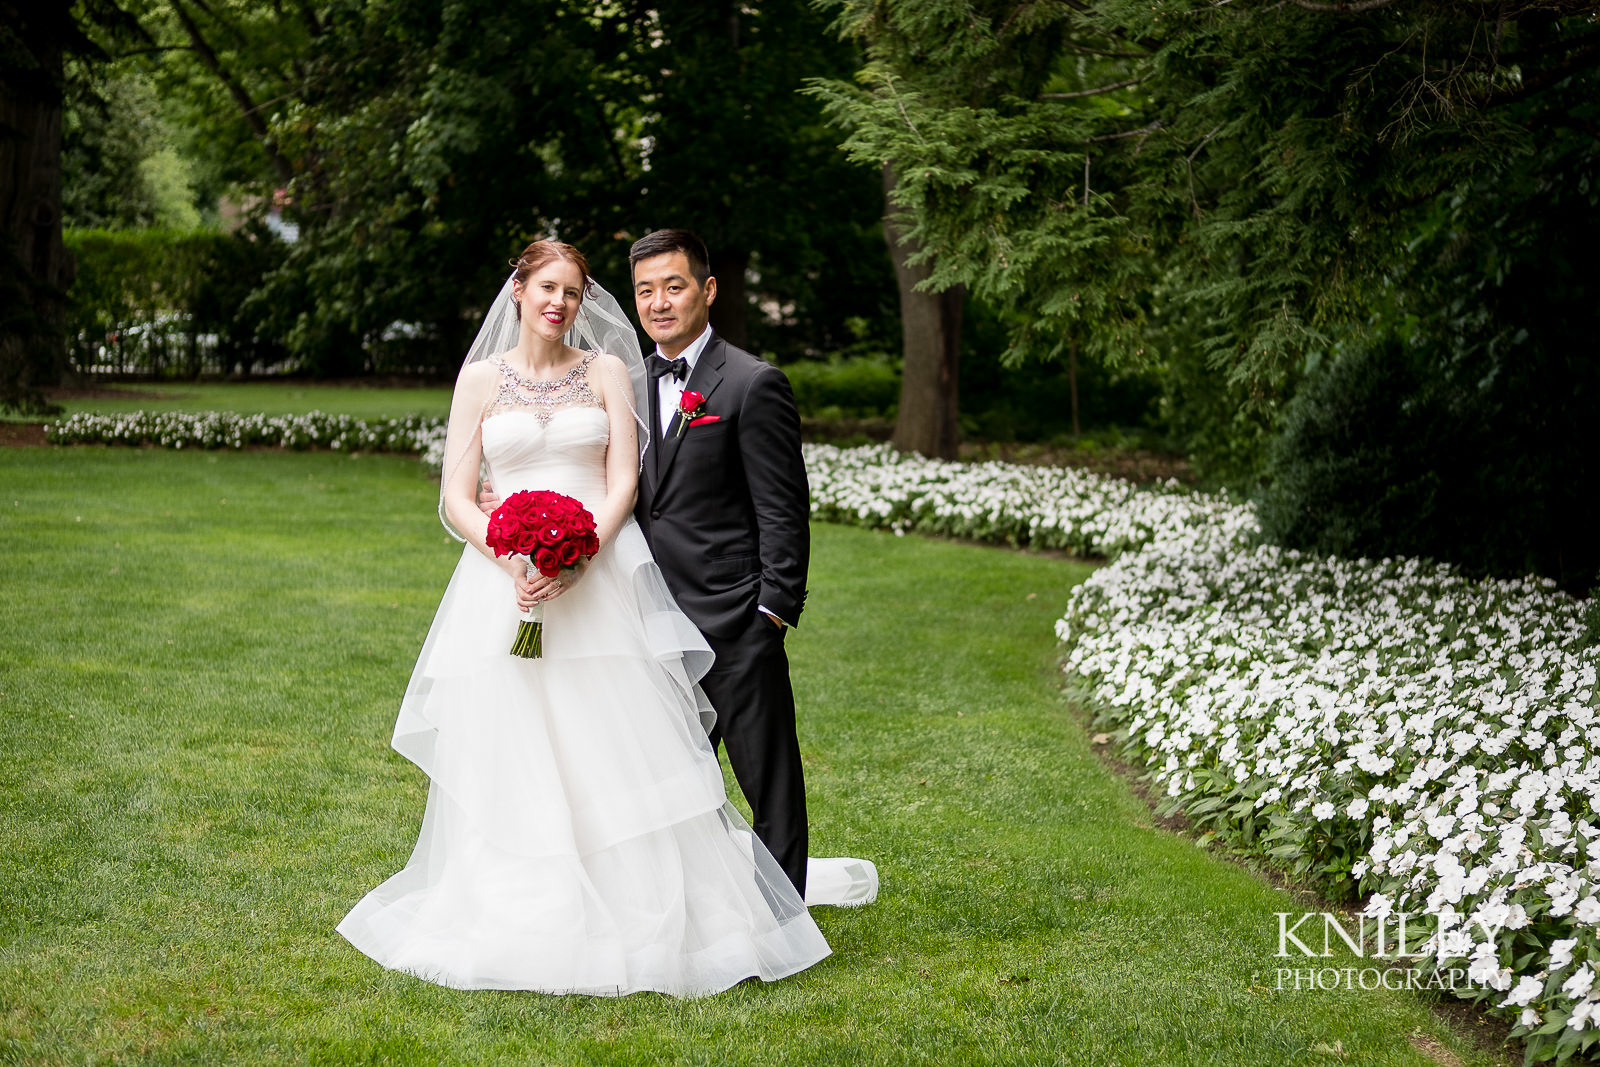 091 - Rochester NY wedding pictures - Genesee Valley Club - Ceremony and Reception - XT2A5781.jpg